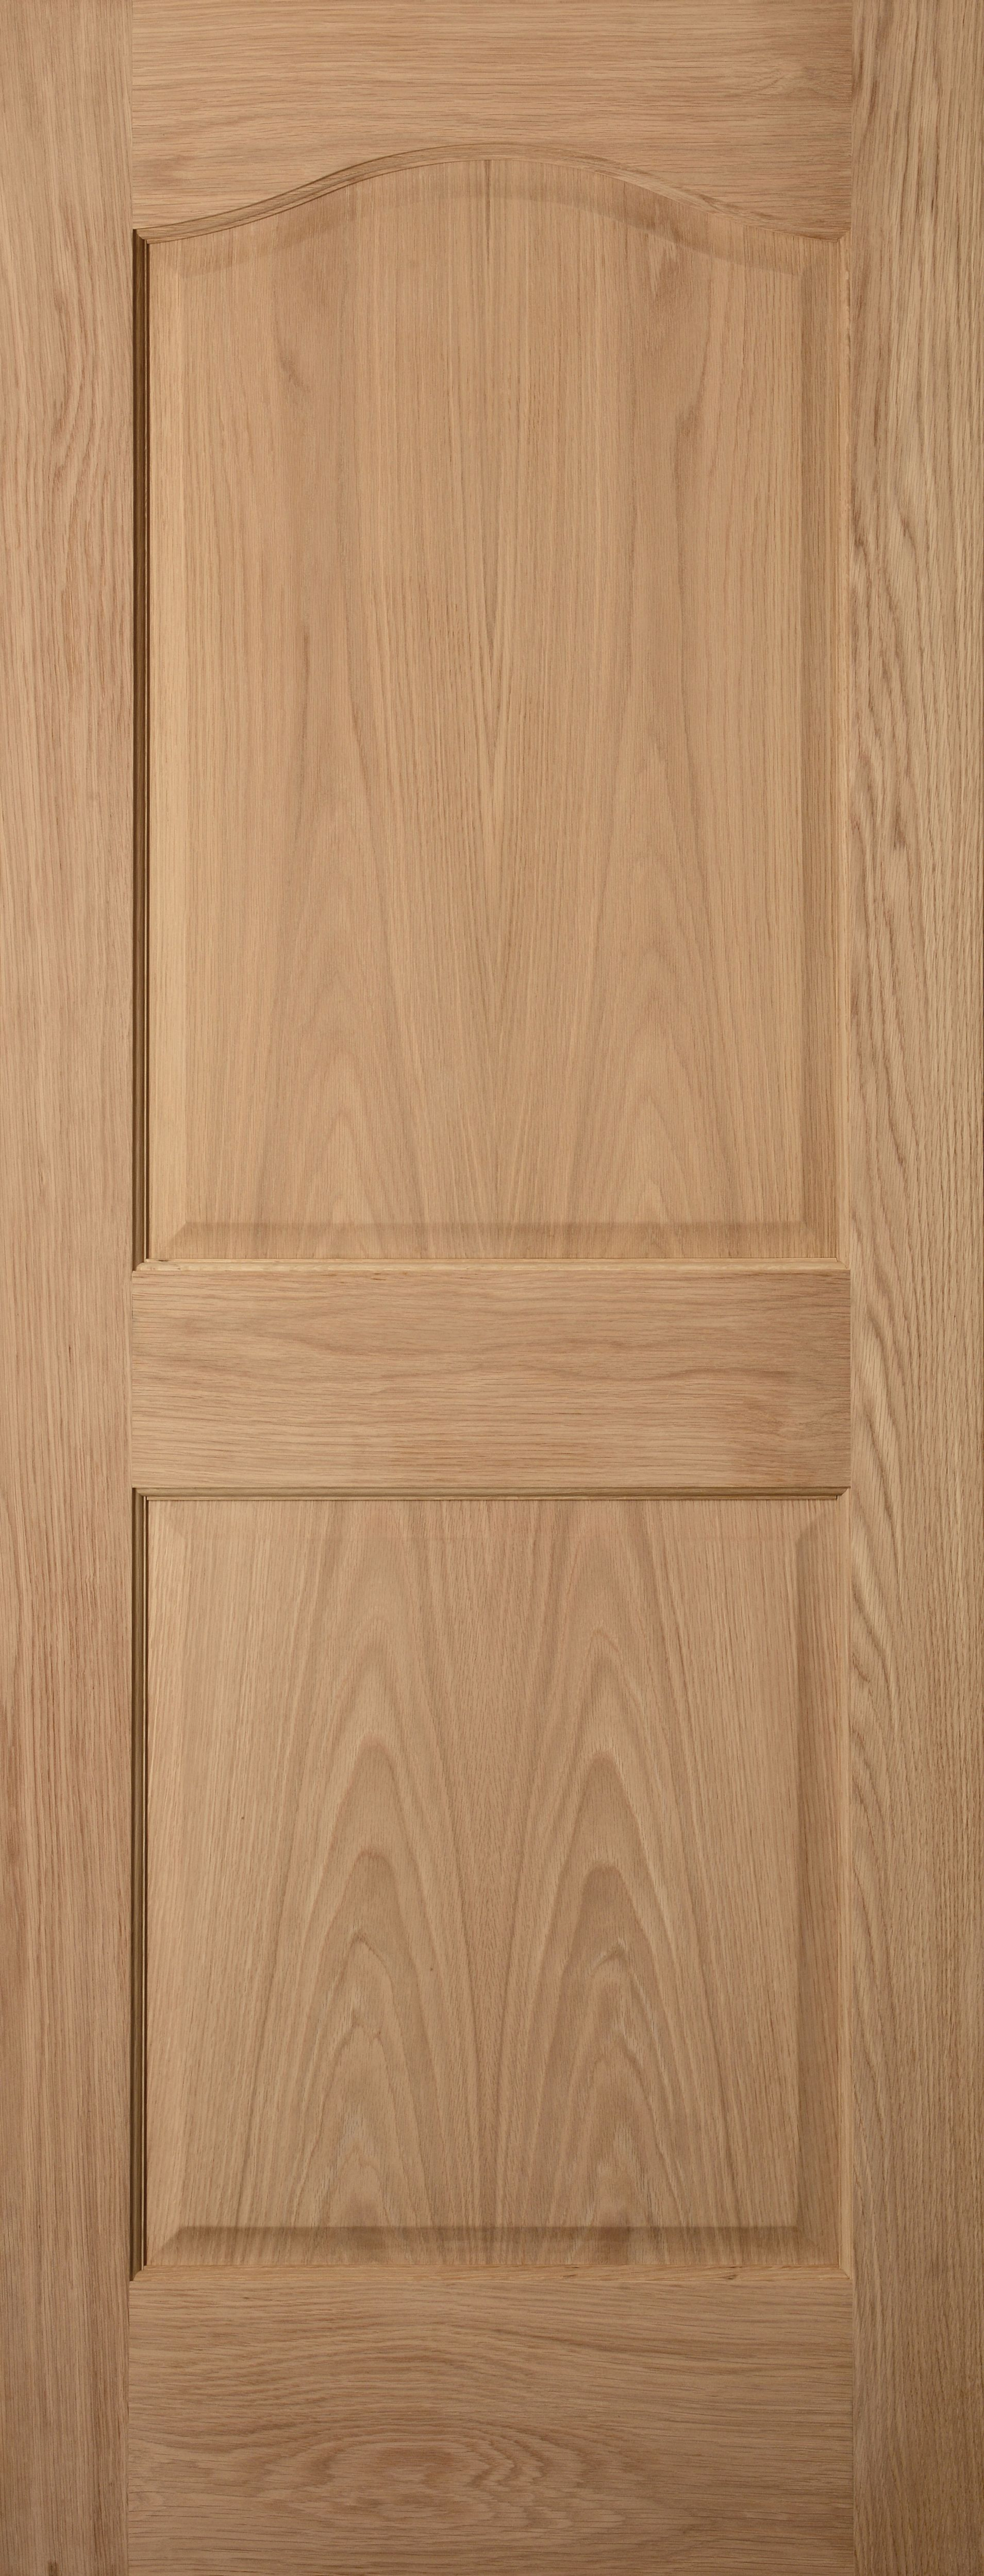 2 Panel Arched Oak Veneer Unglazed Internal Standard Door, (h)1981mm (w)610mm